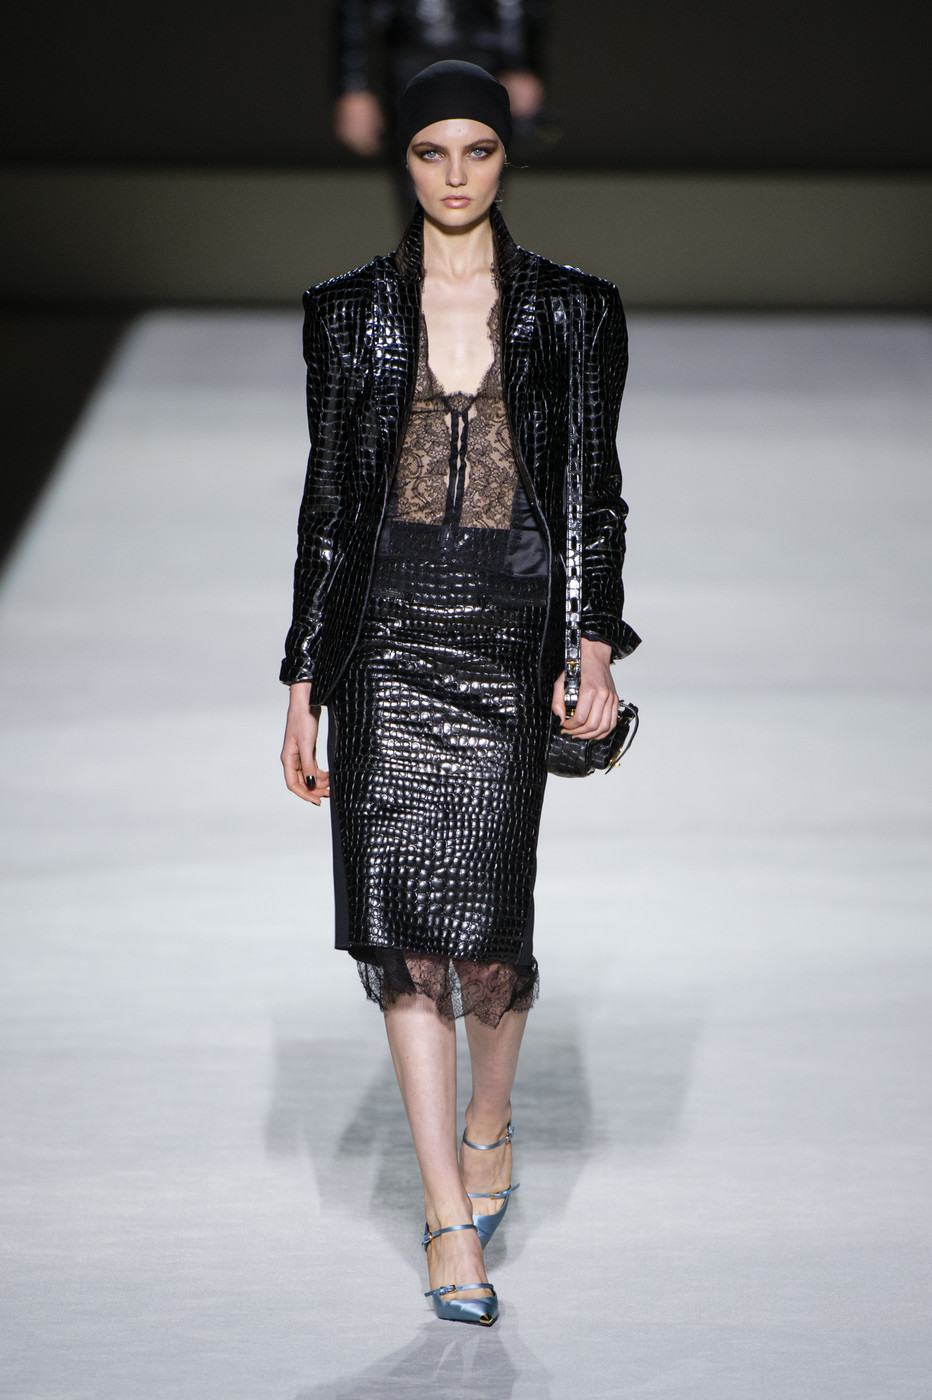 Tom Ford Spring 2019 Runway Pictures